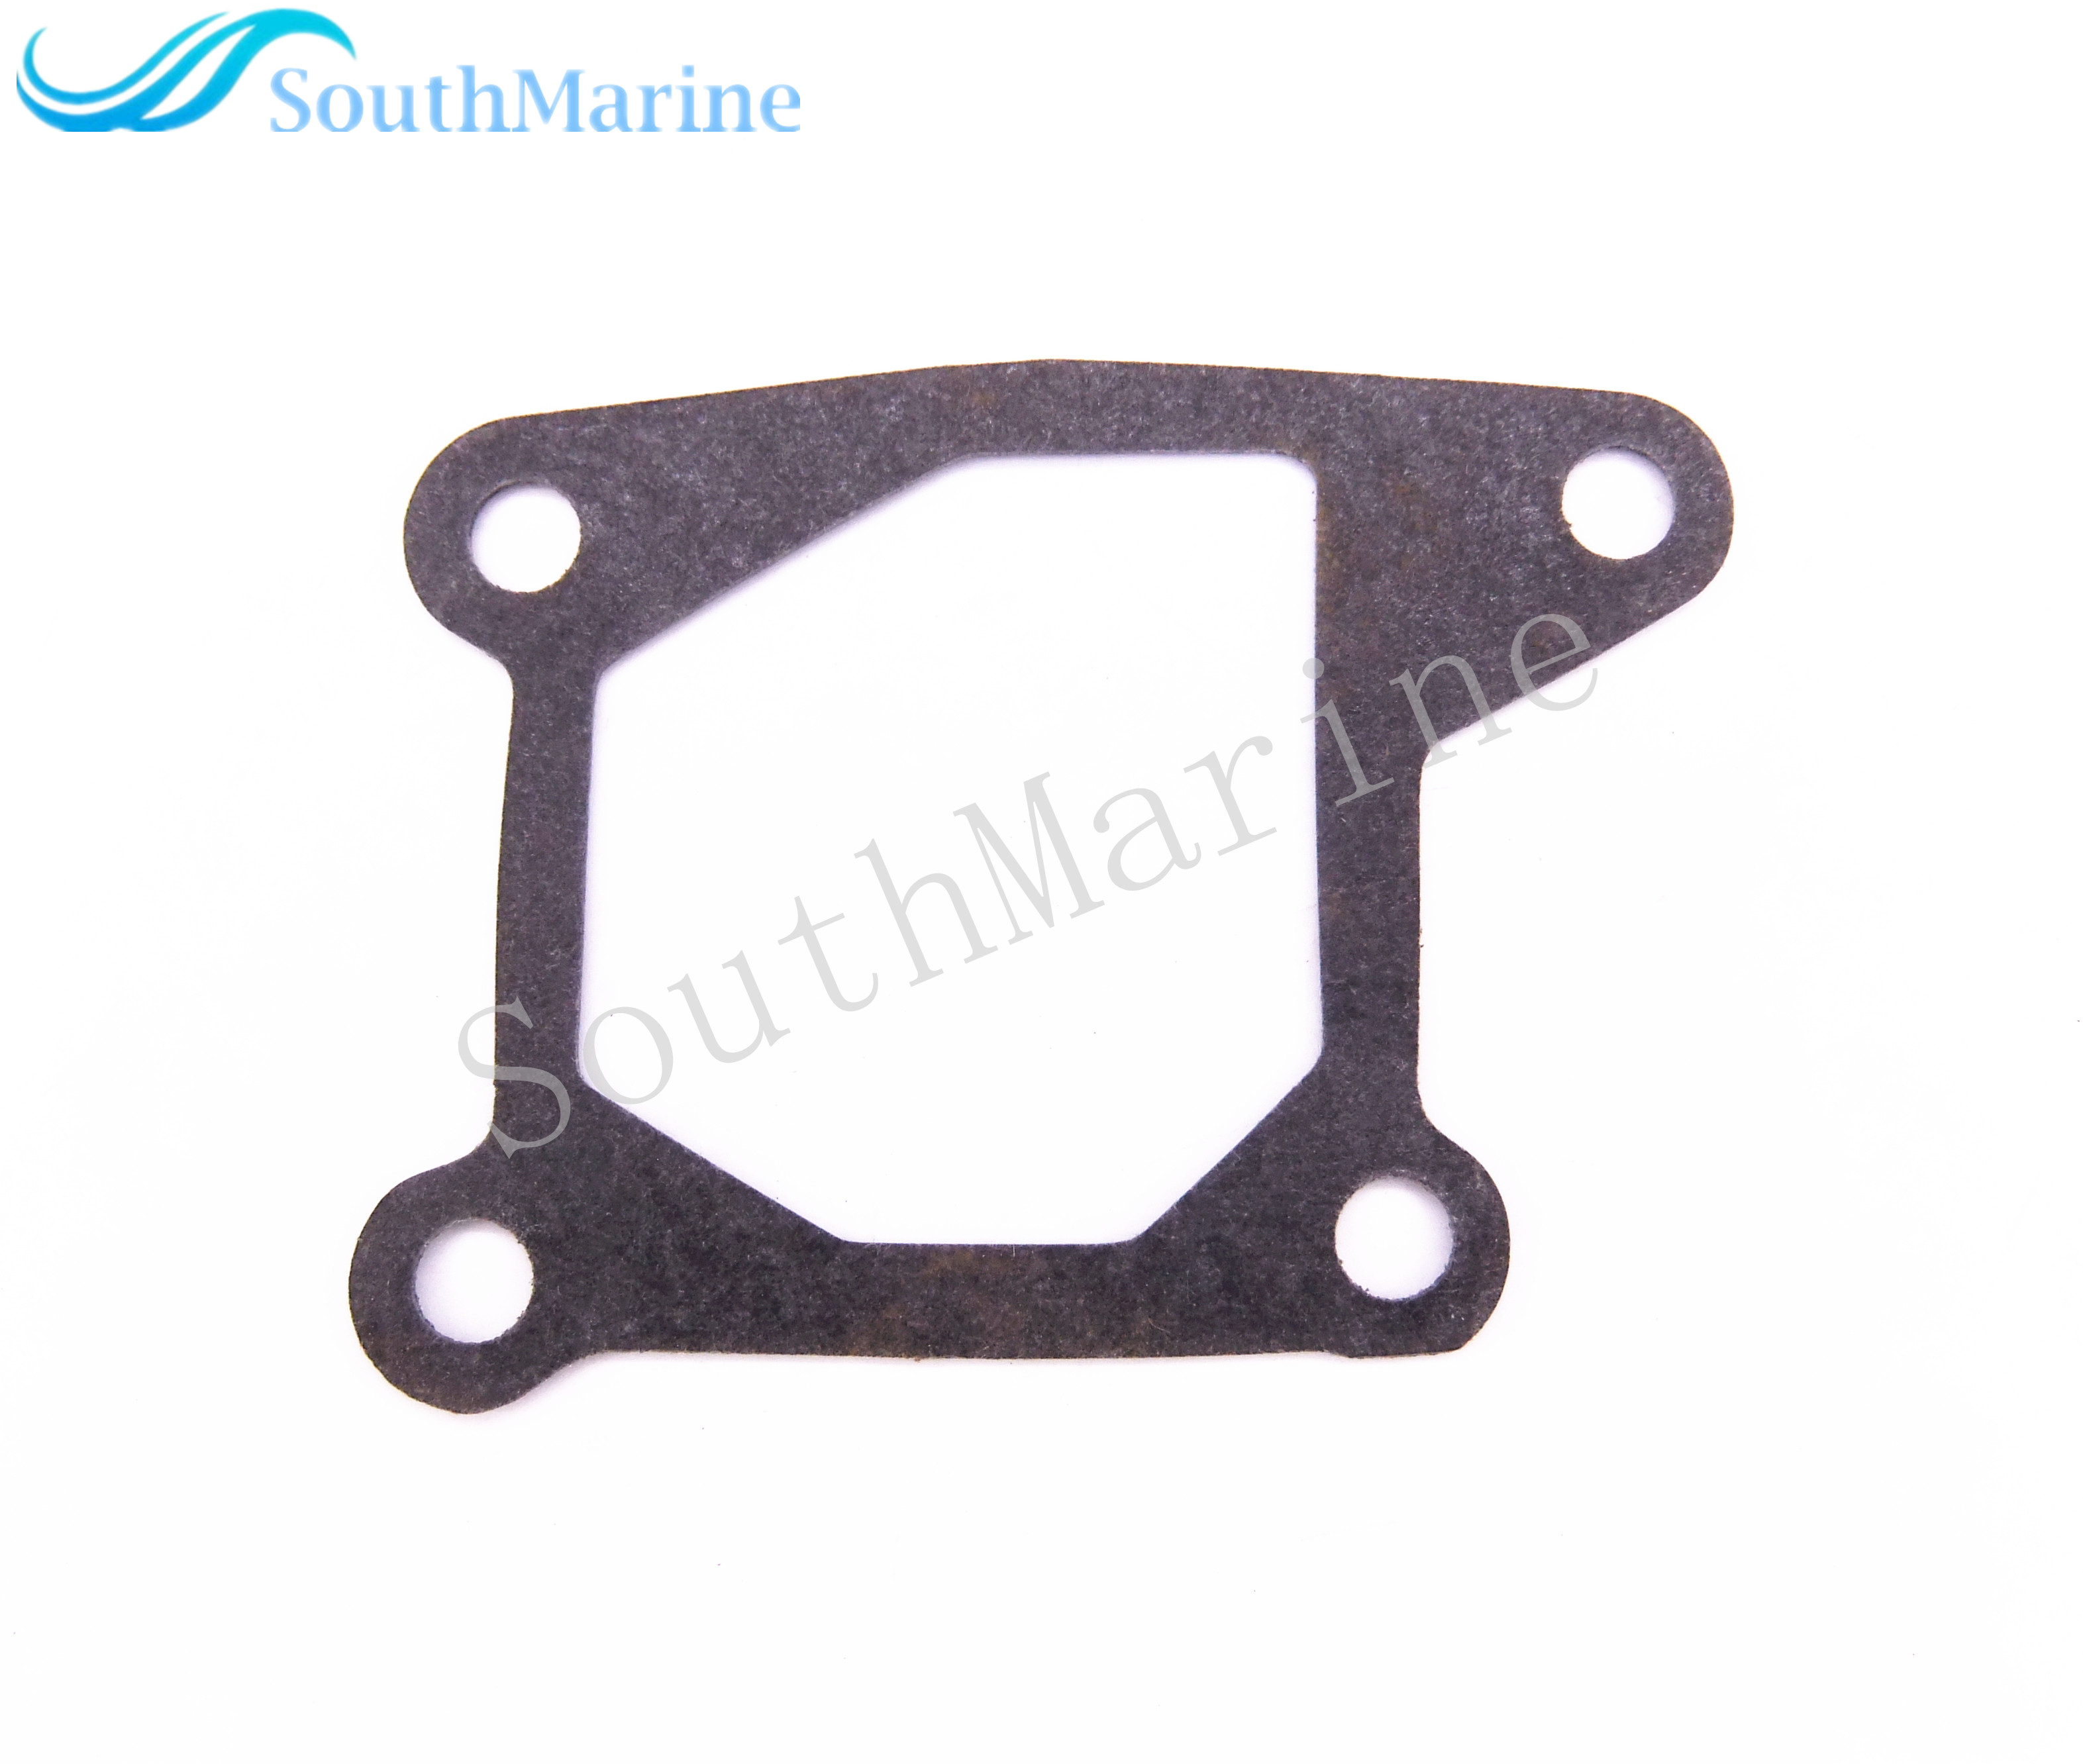 Outboard Engine 9.8F-05.01 Exhaust Pipe Gasket for Hidea 2-Stroke 9.8F 8F 6F Boat Motor Free Shipping